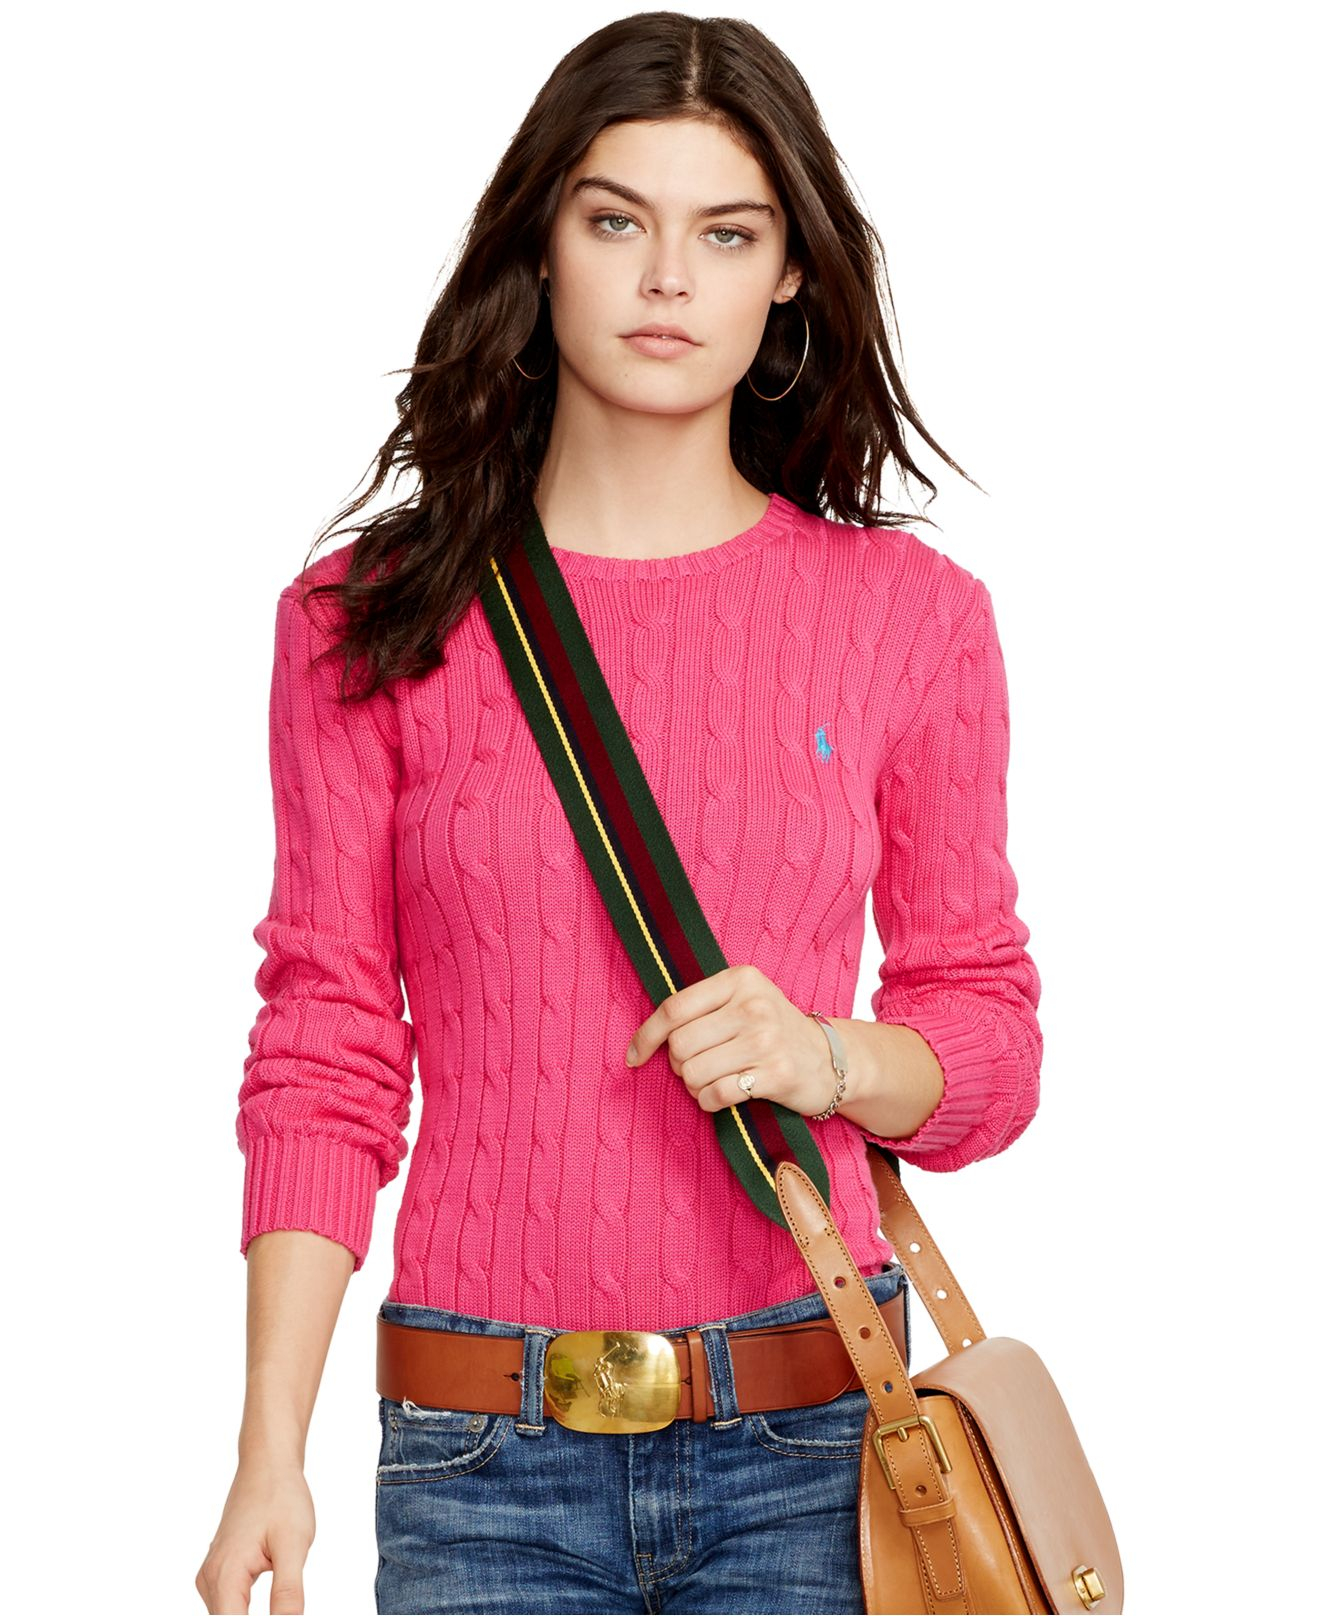 Find great deals on eBay for Hot Pink Cardigan in Women's Clothing and Sweaters. Shop with confidence.